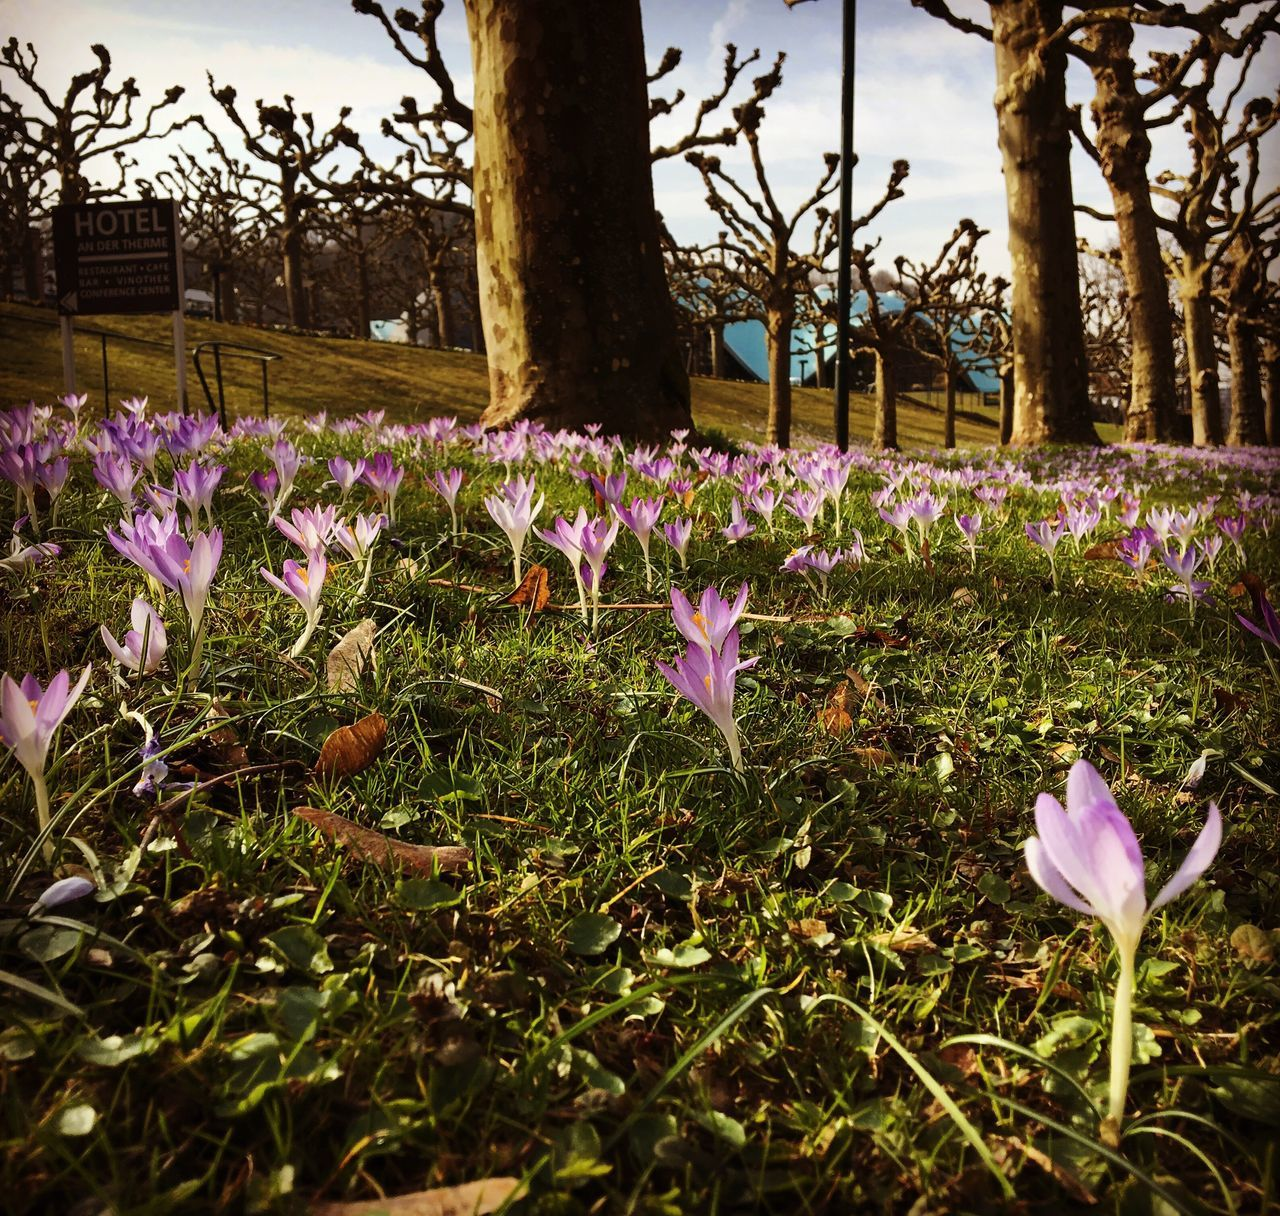 flower, growth, nature, beauty in nature, purple, fragility, field, tree, no people, outdoors, day, blooming, freshness, plant, petal, grass, park - man made space, crocus, flower head, close-up, sky, petunia